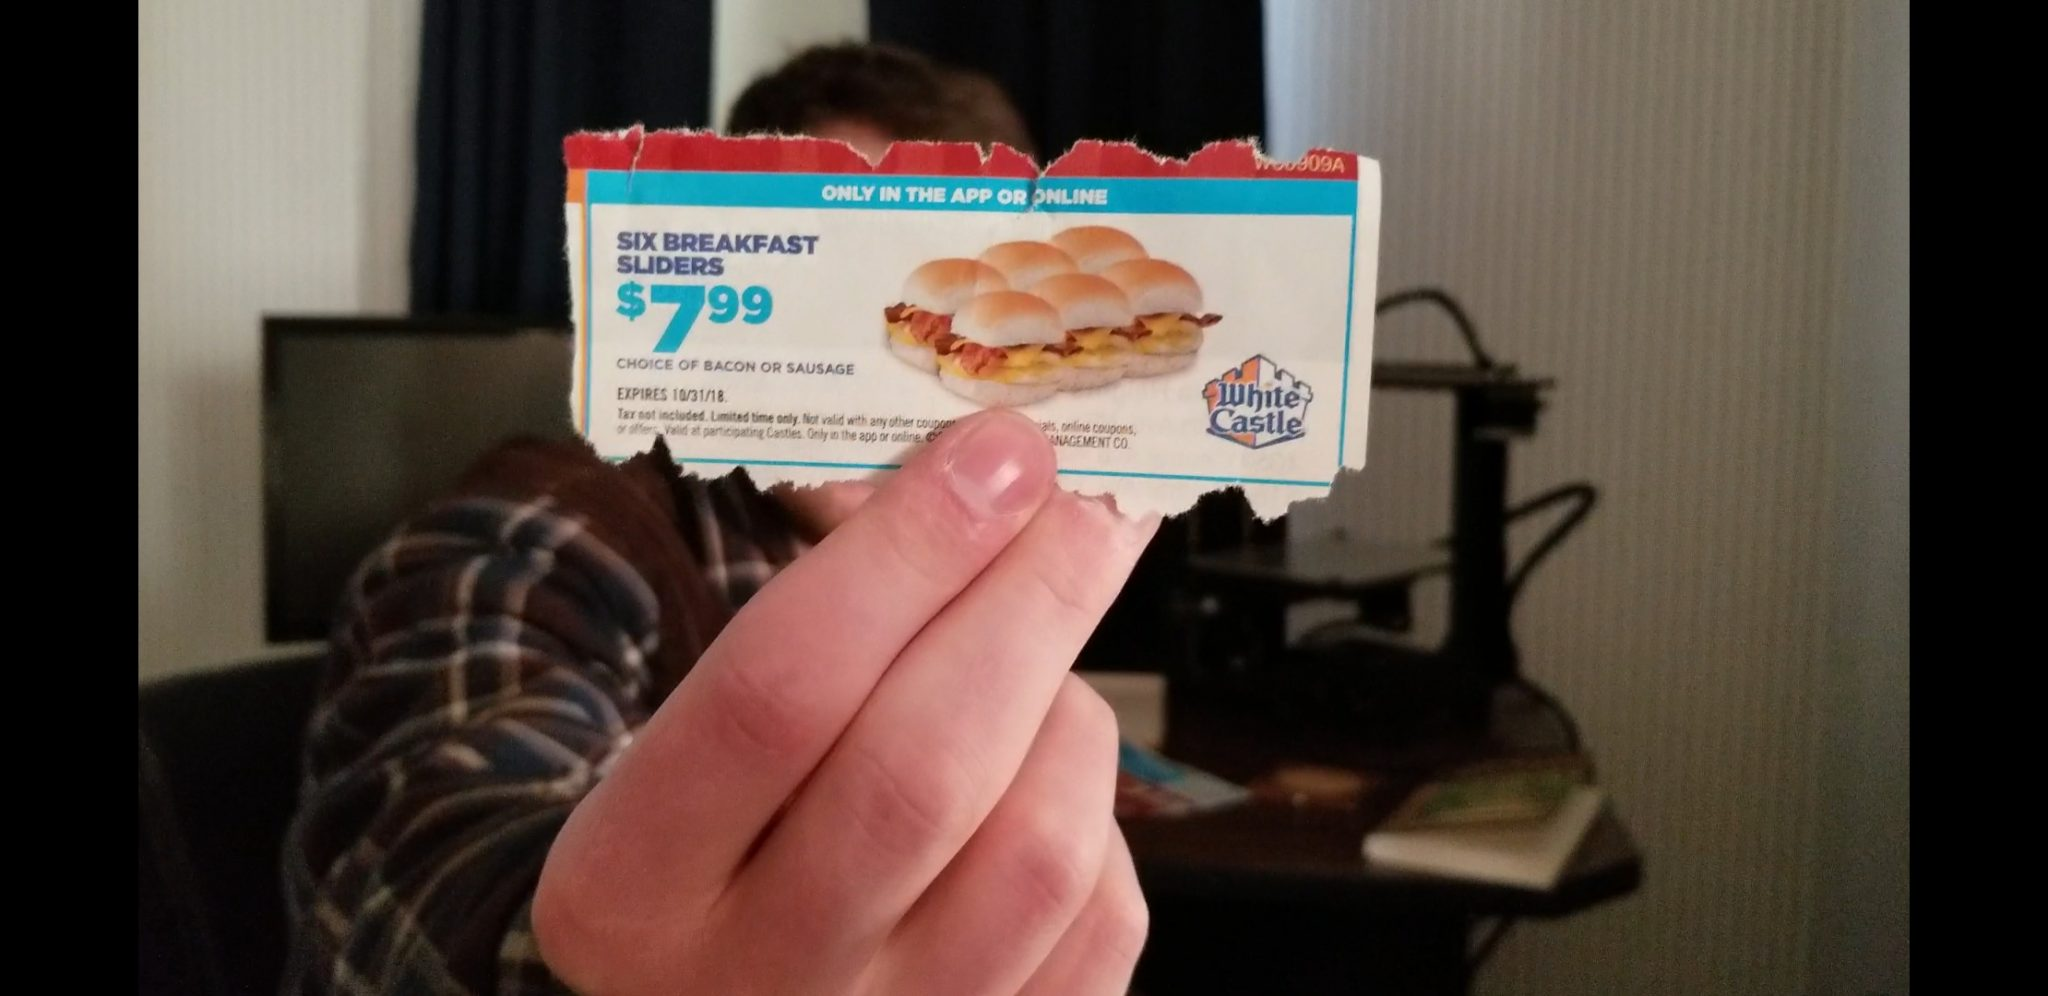 White Castle 6 Slider App Deal Coupon